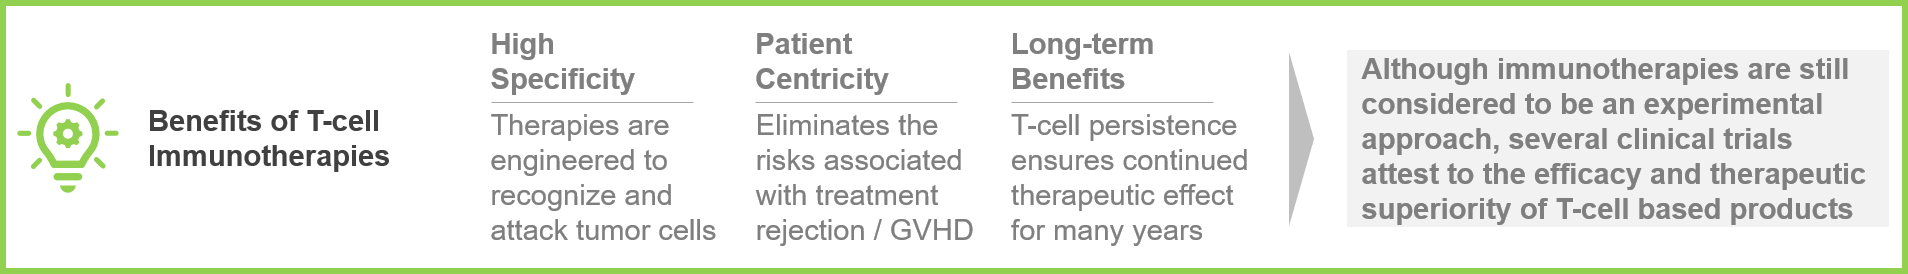 Benefits of immunotherapy